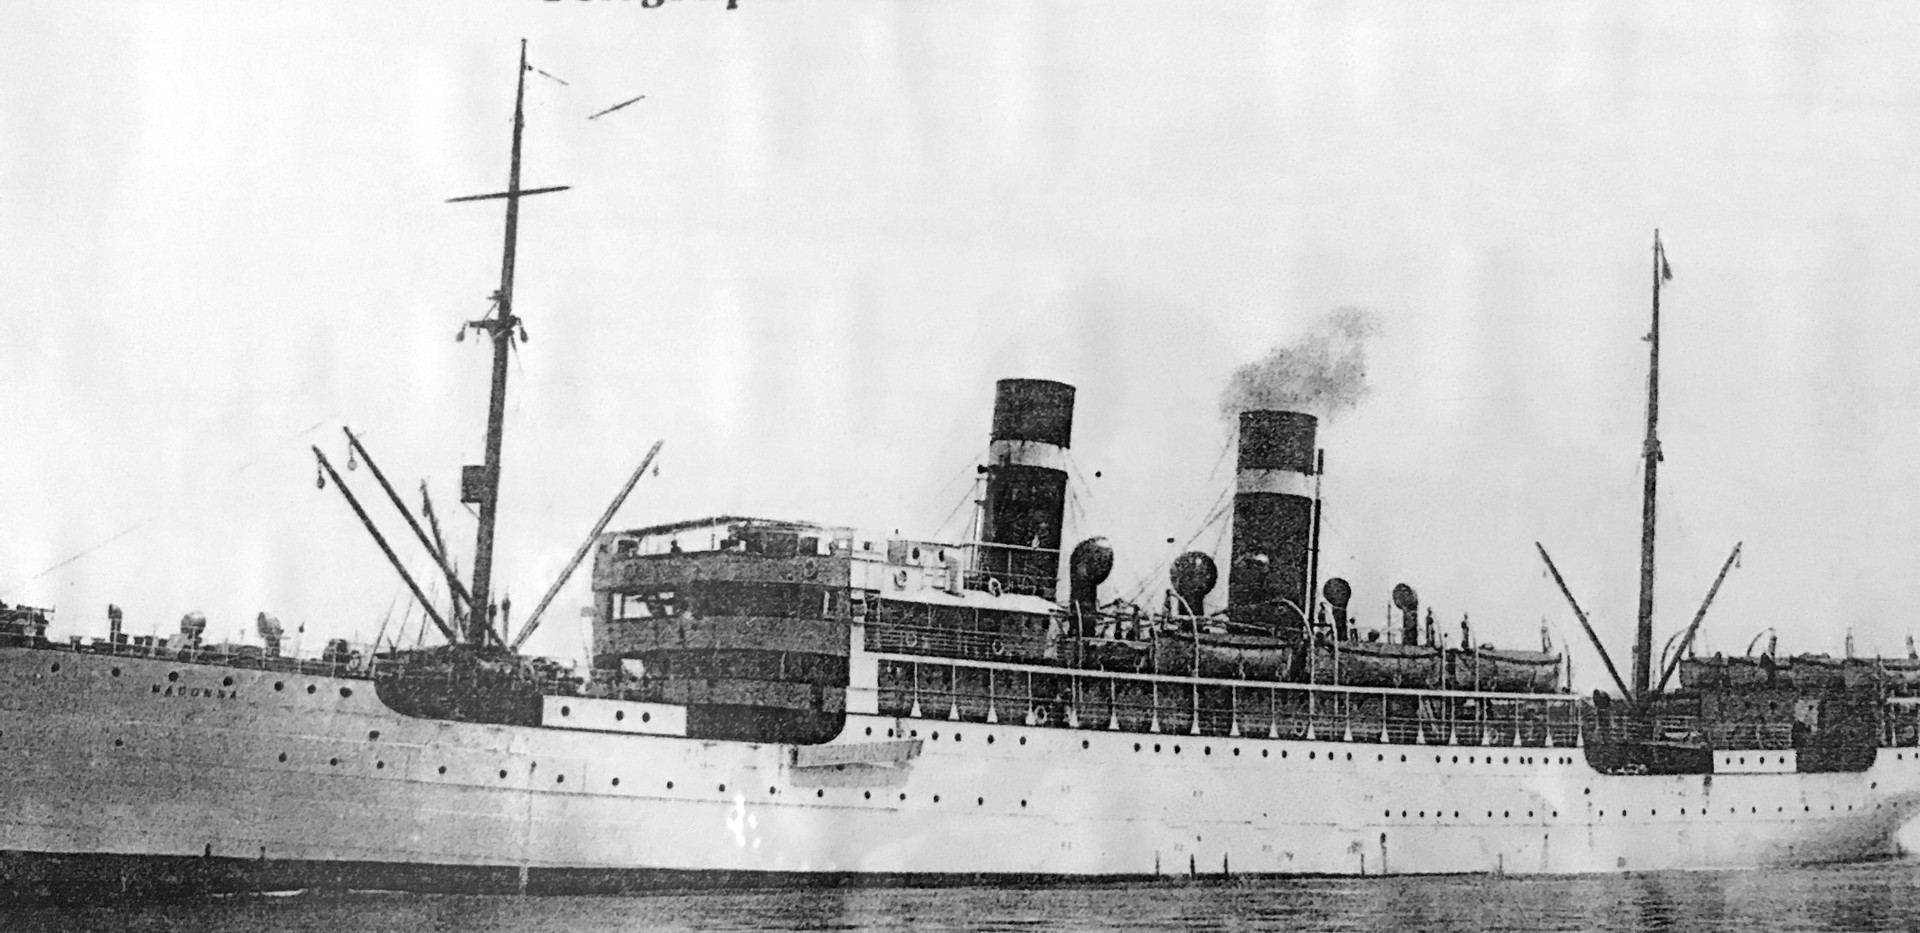 Vessels like the S.S. Madonna carried about four million Italian immigrants to the U.S. between 1880 and 1924. Originally, the trip to New York took three months. Later, the journey by steam ship was made in 10 days. Immigrants booked the cheapest passage in steerage or 3rd class. Conditions were brutal.